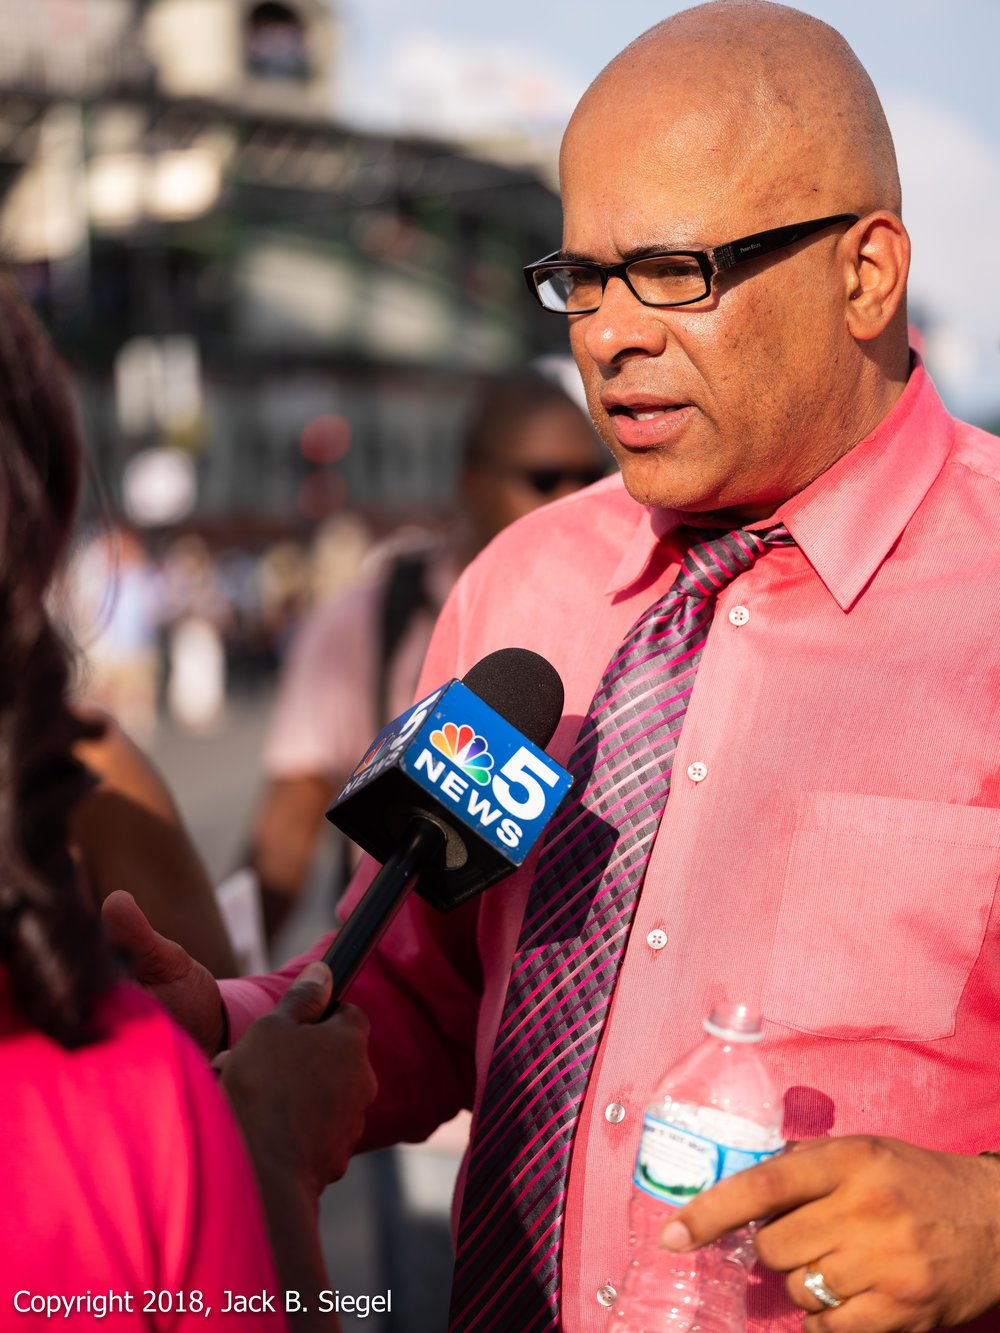 _DSF3712_Copyright 2018 jpeg_Tio Hardiman Speaking With NBC News 5 on a Humid Day.jpg